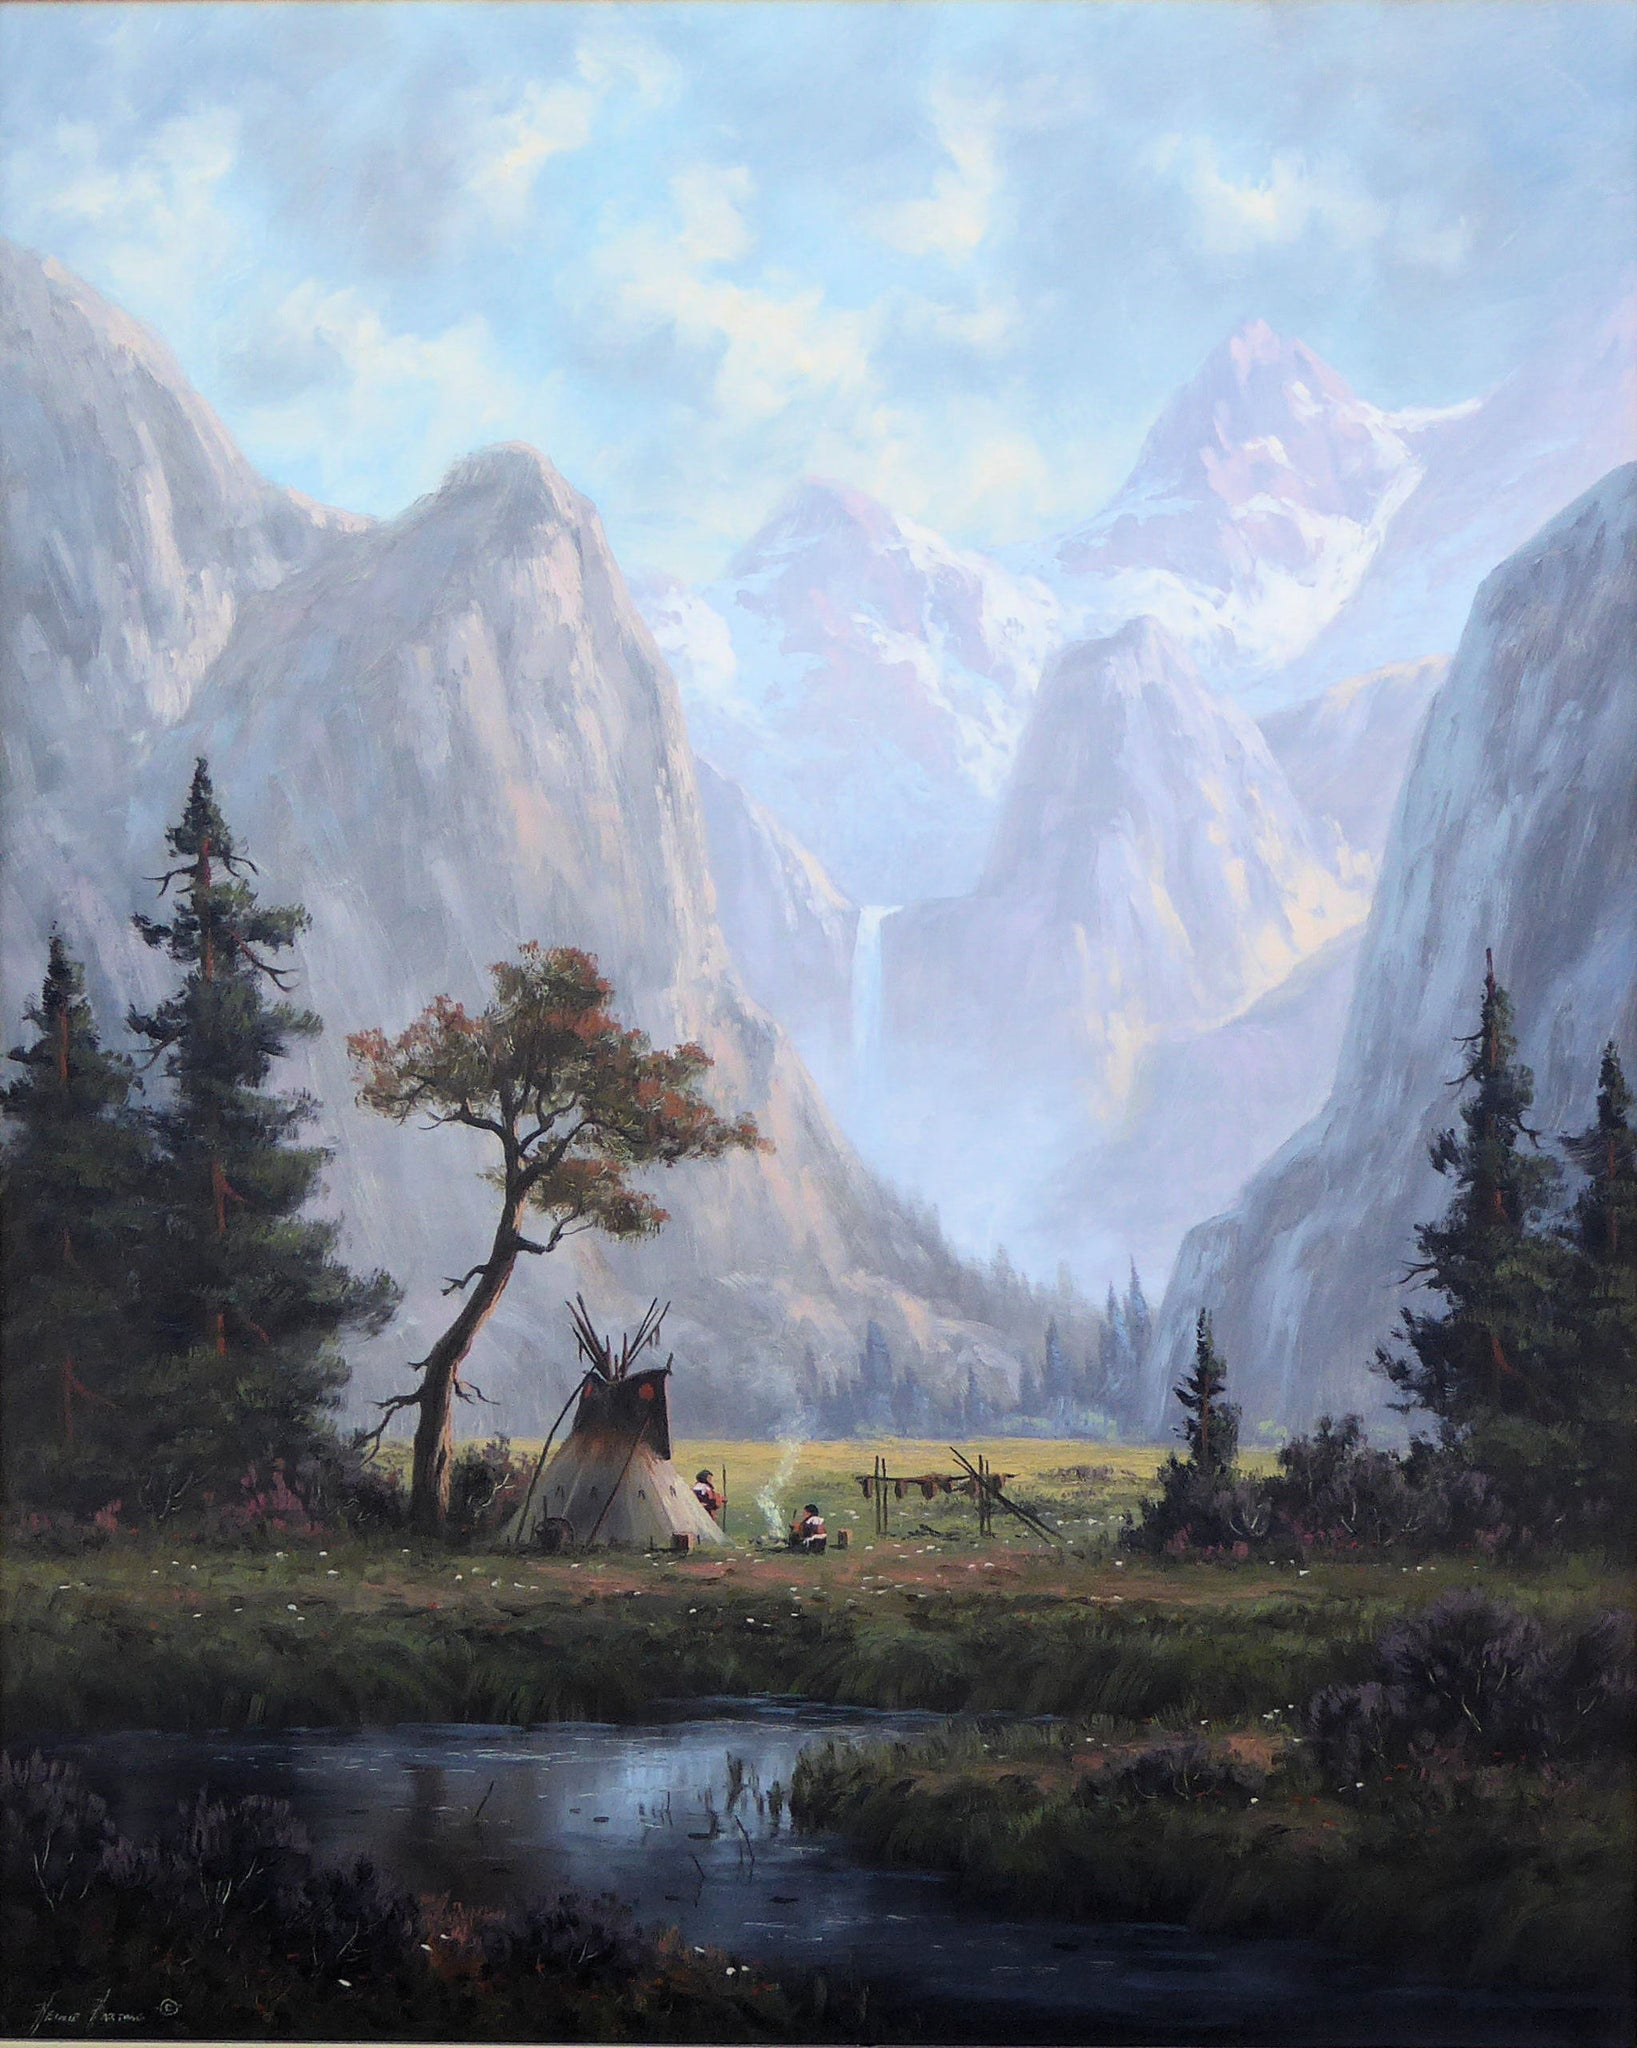 Camp in the Meadow by Heinie Hartwig heinie hartwig, native, oil paintings, teepee paintings